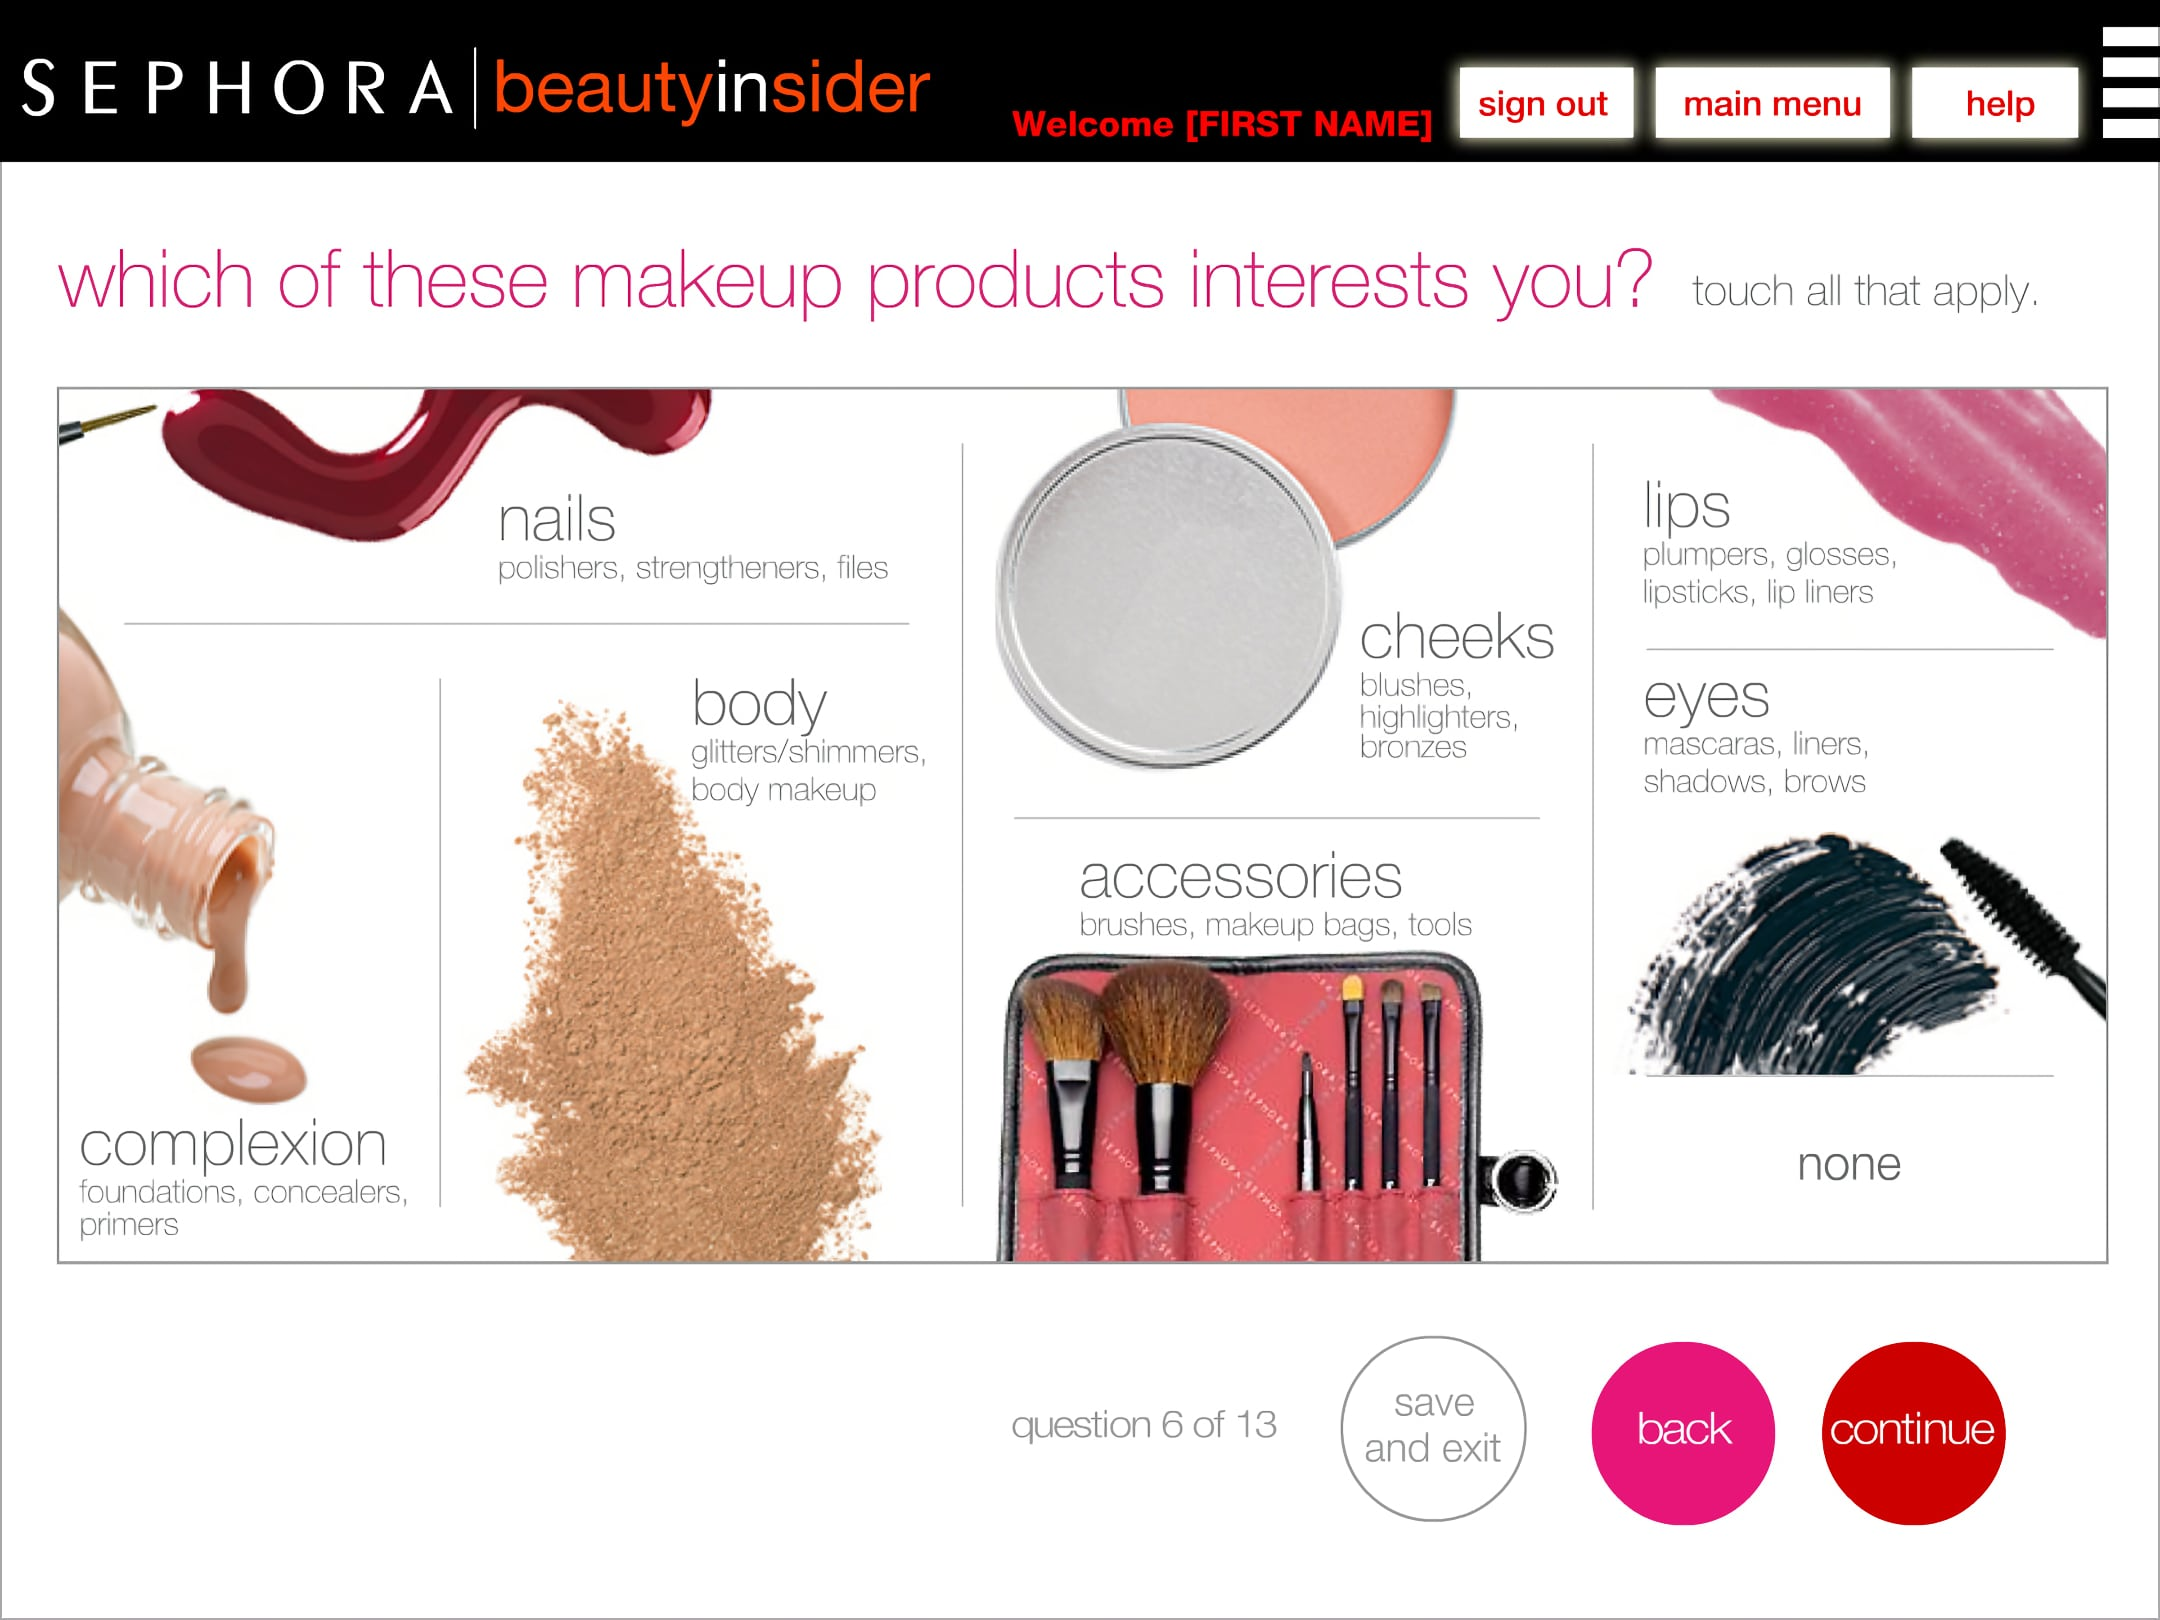 Sephora BI makeup products selector